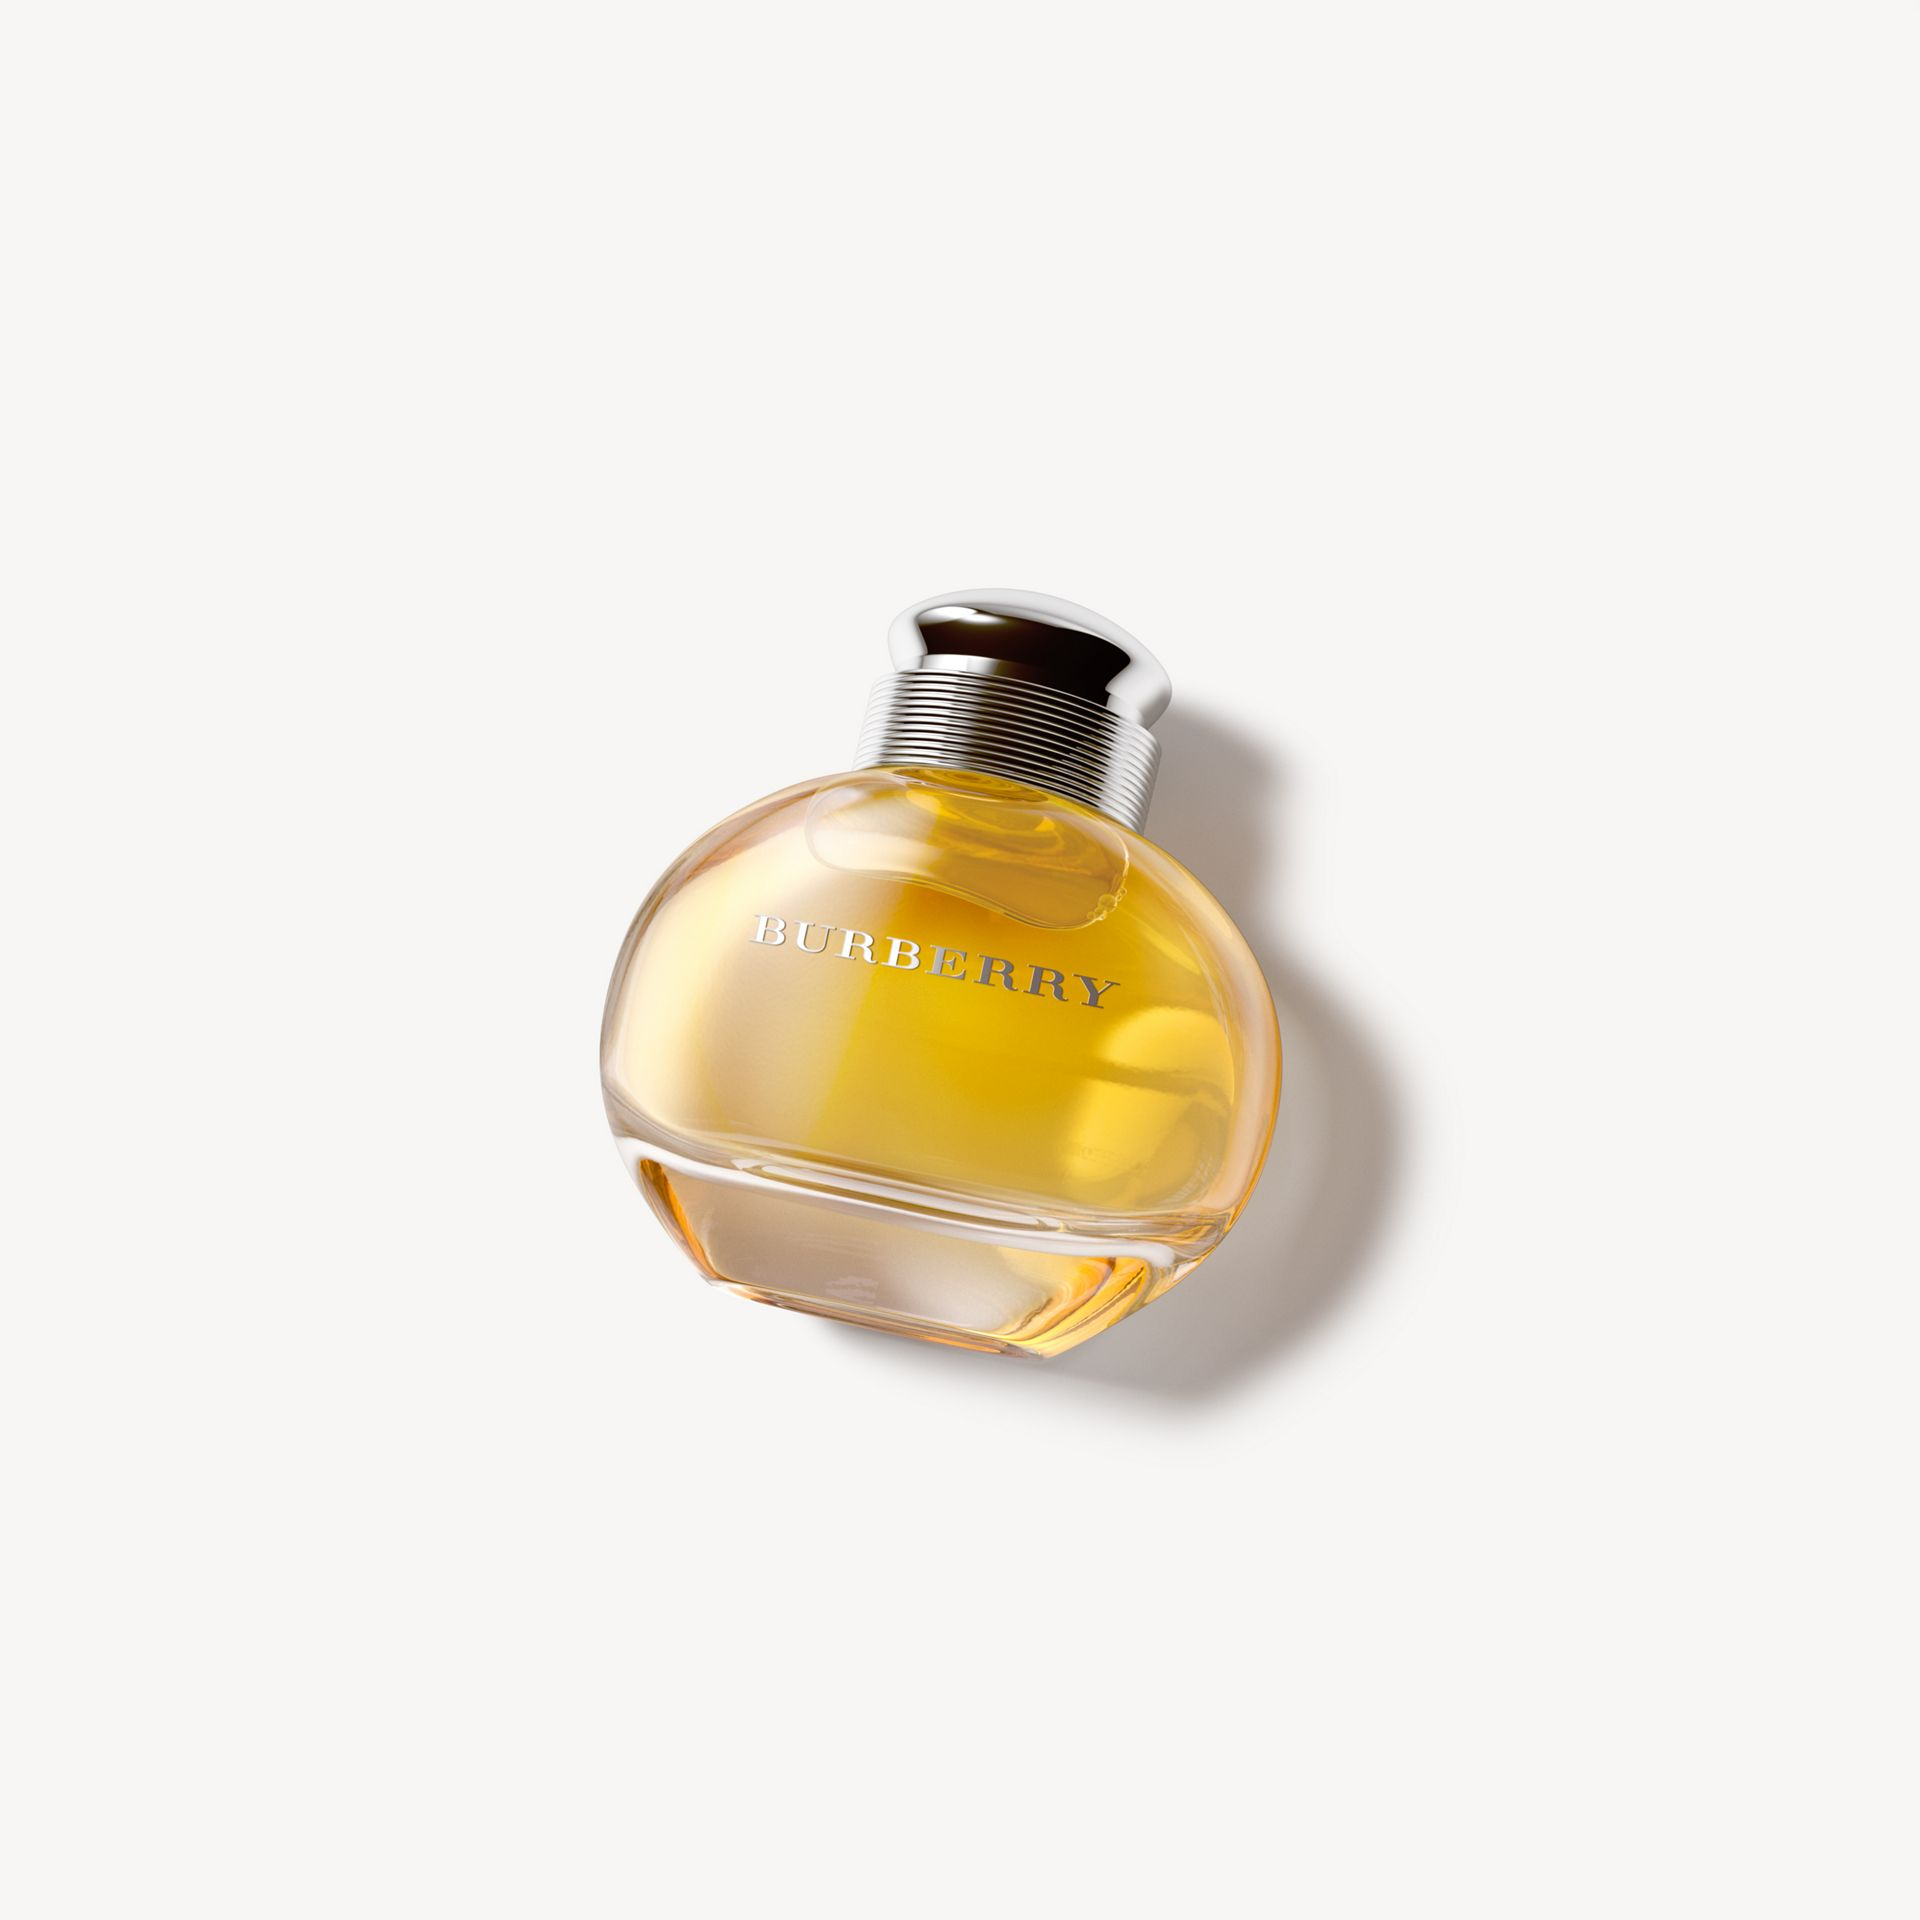 Burberry For Women Eau de Parfum 50 ml - immagine della galleria 1